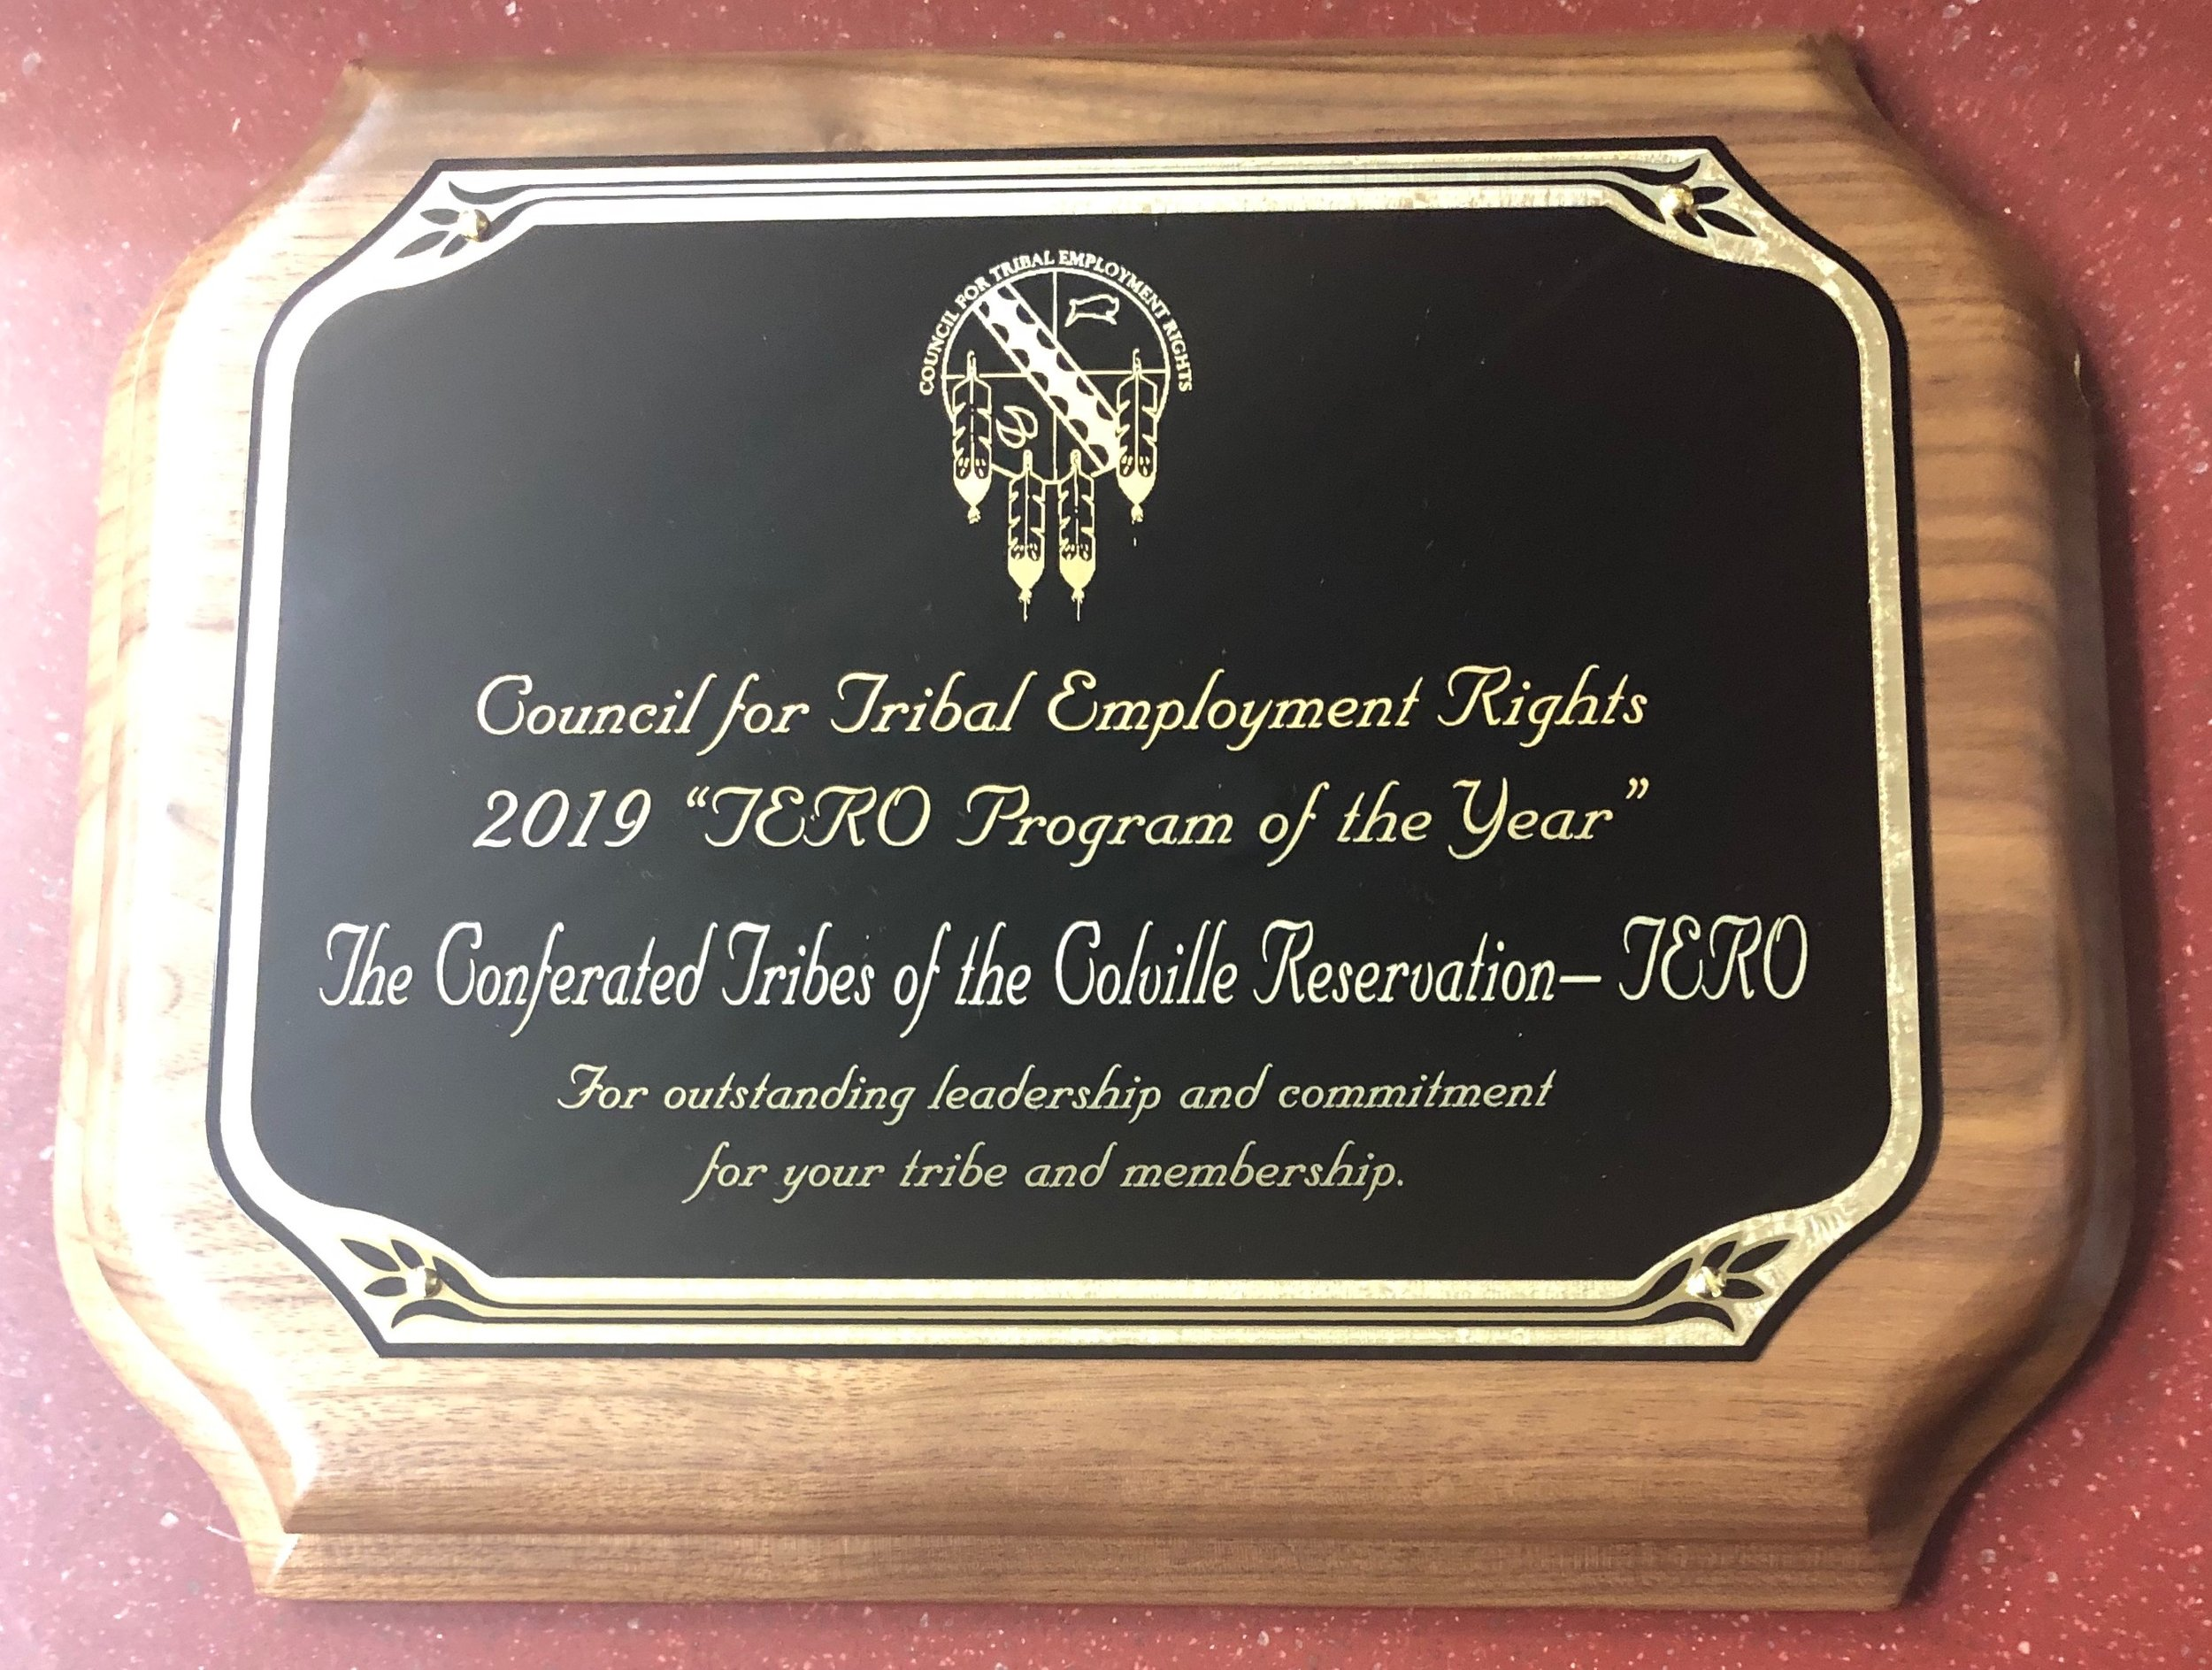 TERO wins national program of the year.  The Council for Tribal Employment Rights has awarded the Confederated Tribes of the Colville Reservation's TERO department as the 2019 program of the year. The award goes to a program for outstanding leadership and commitment for your tribe and membership. TERO director John MacClain received a plaque commemorating the achievement.